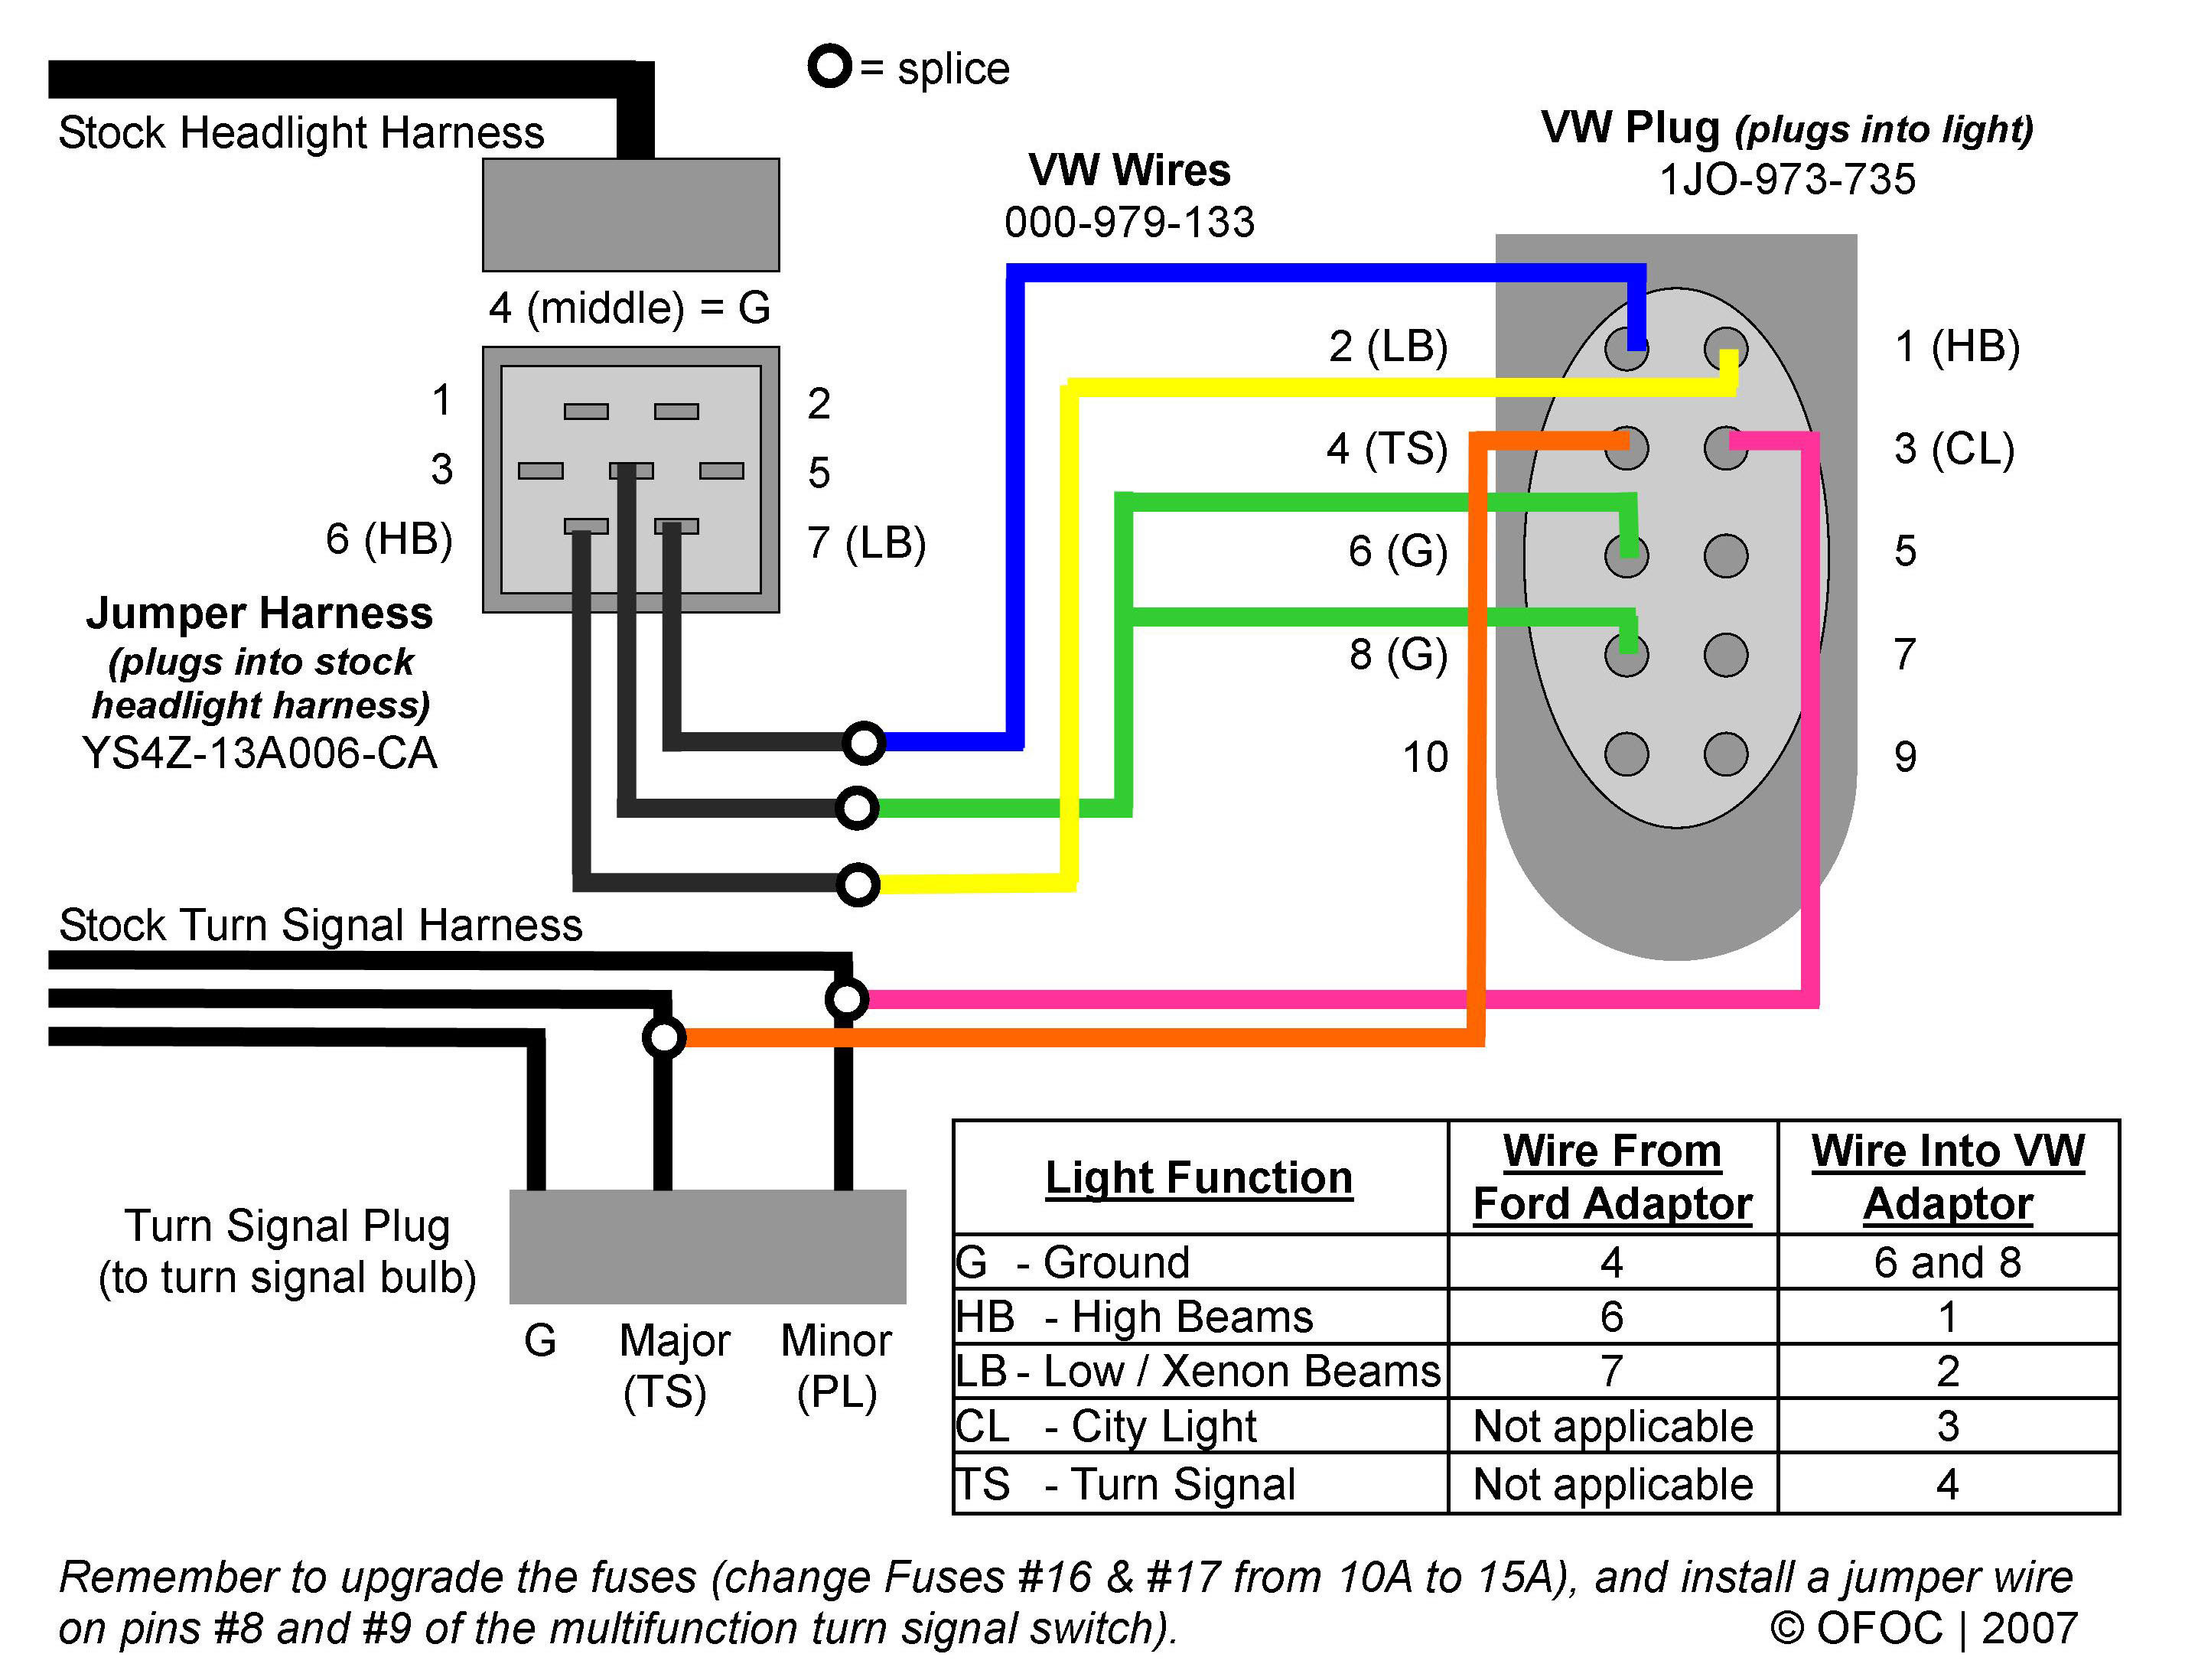 Ford Focu Headlight Wiring Harnes - Wiring Diagram | Ford Headlight Wire Harness Color Code |  | cars-trucks24.blogspot.com